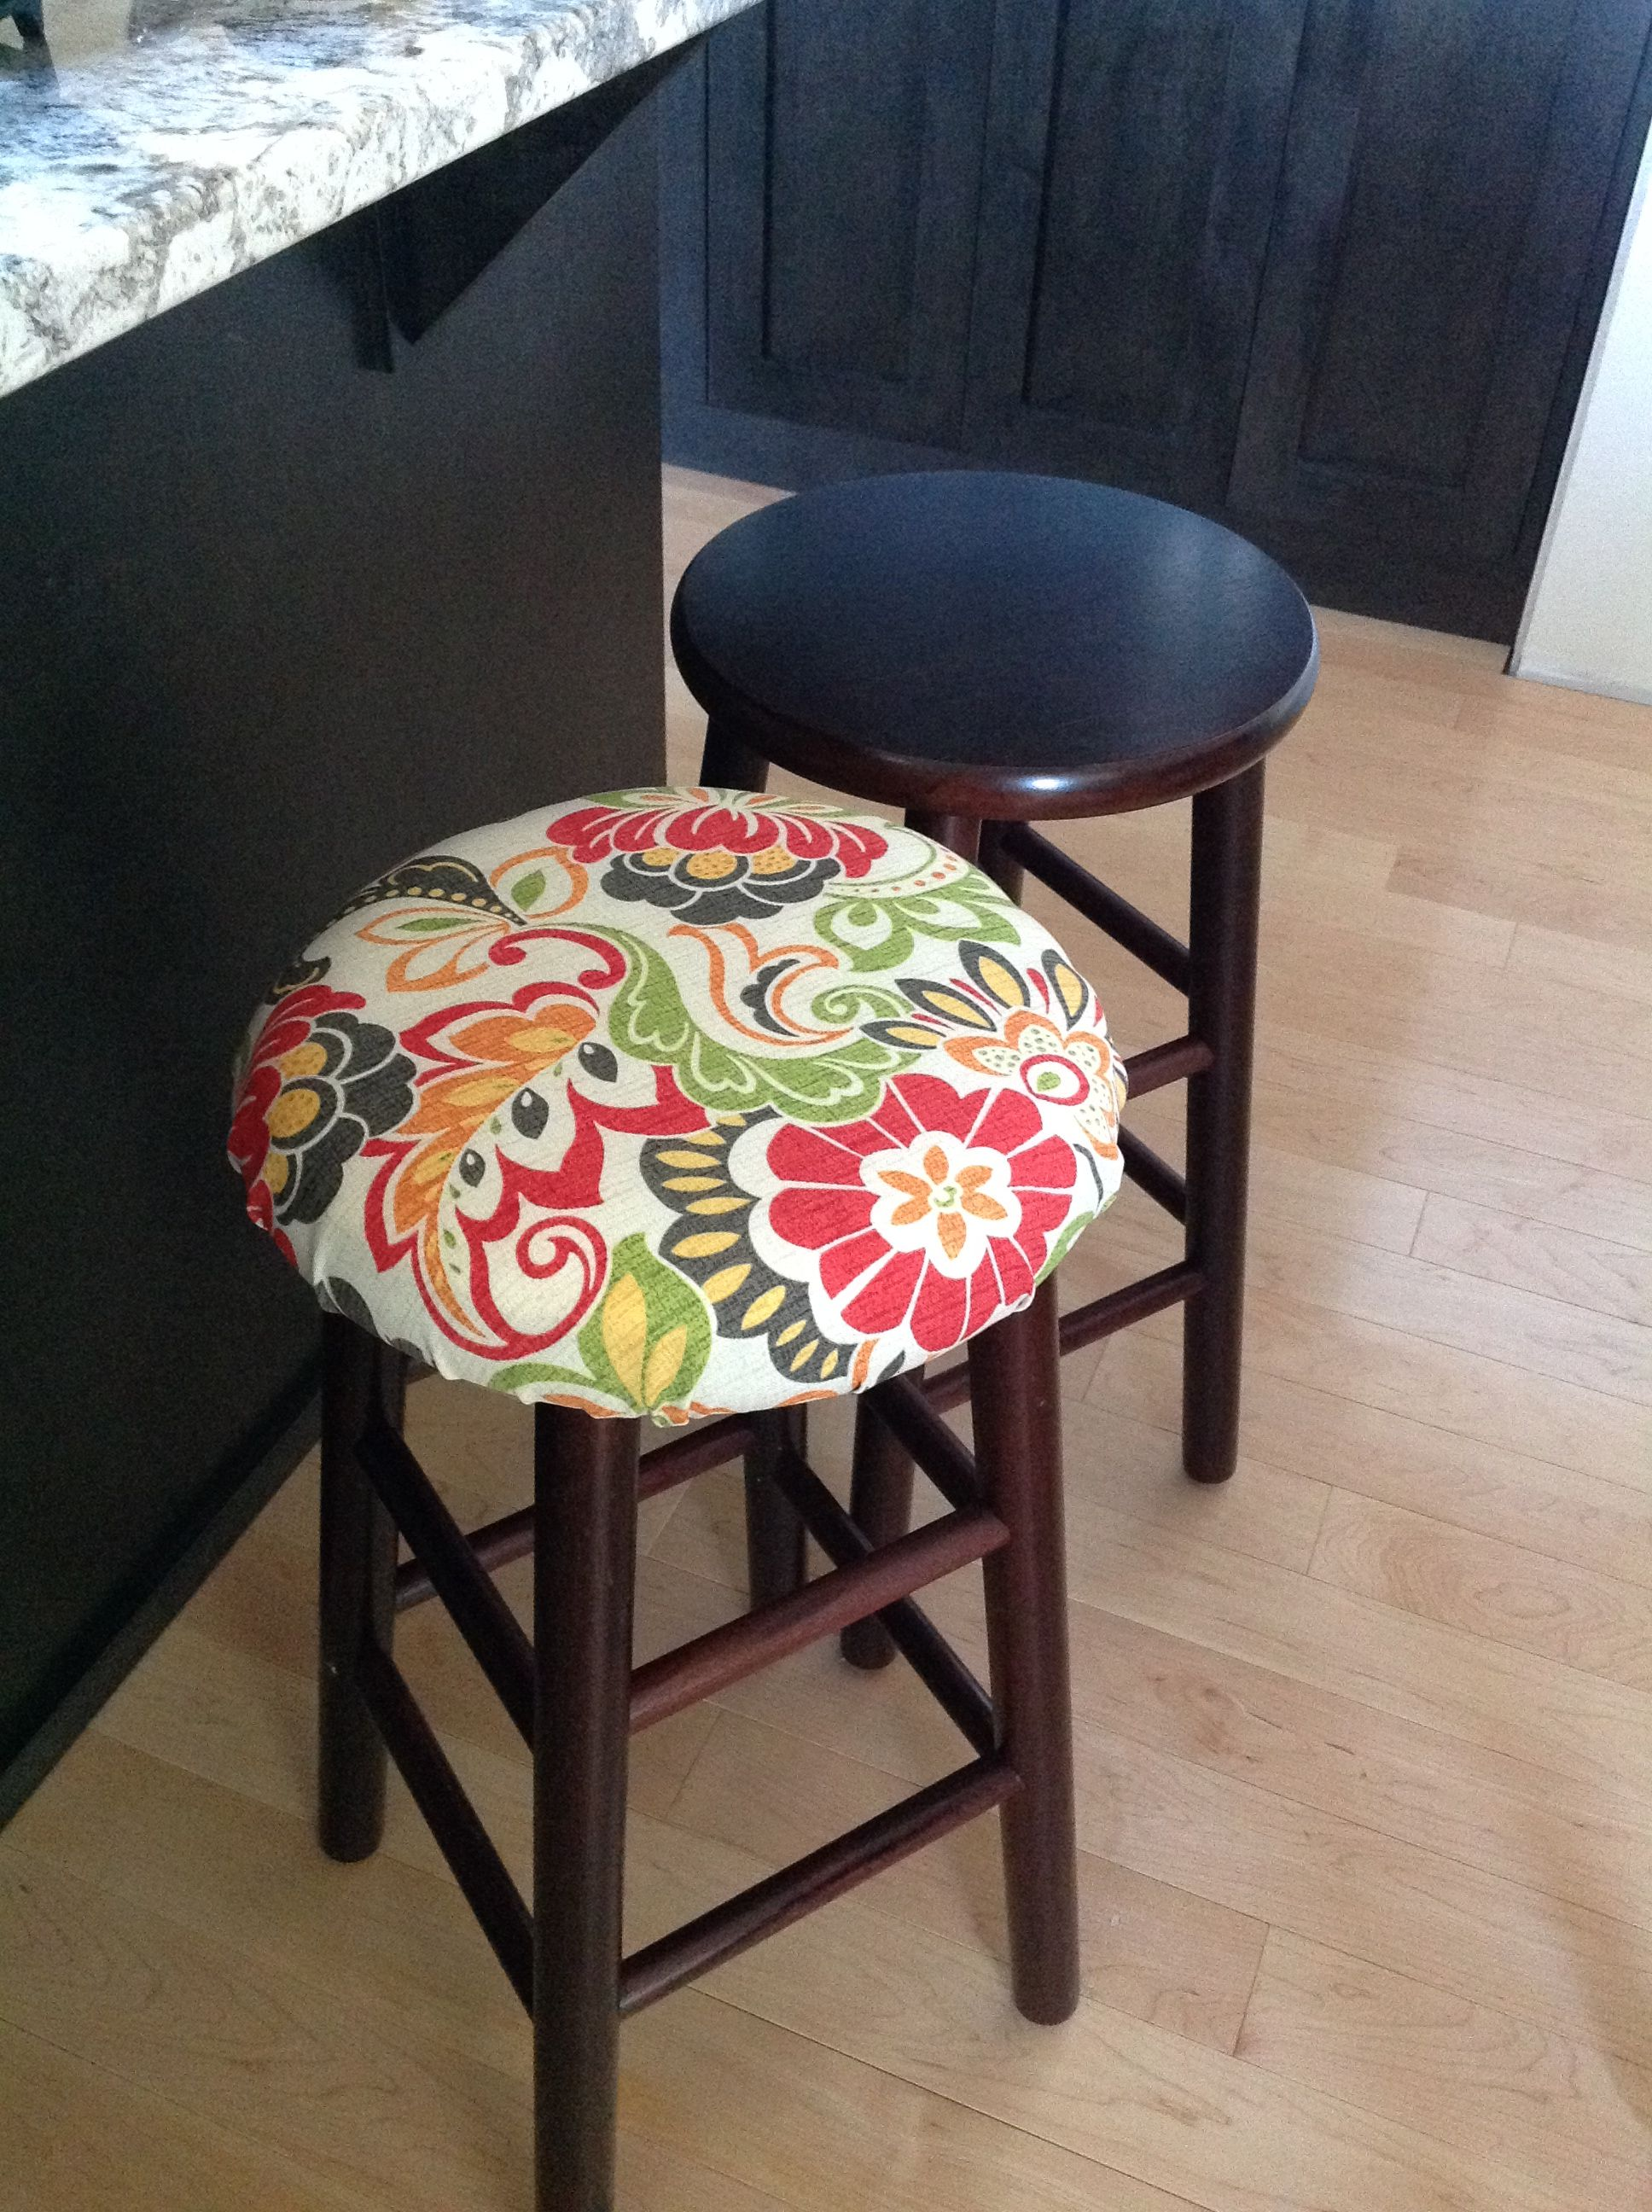 Diy No Sew Bar Stool Cover Just Added Fabric To My Simple Bold Face